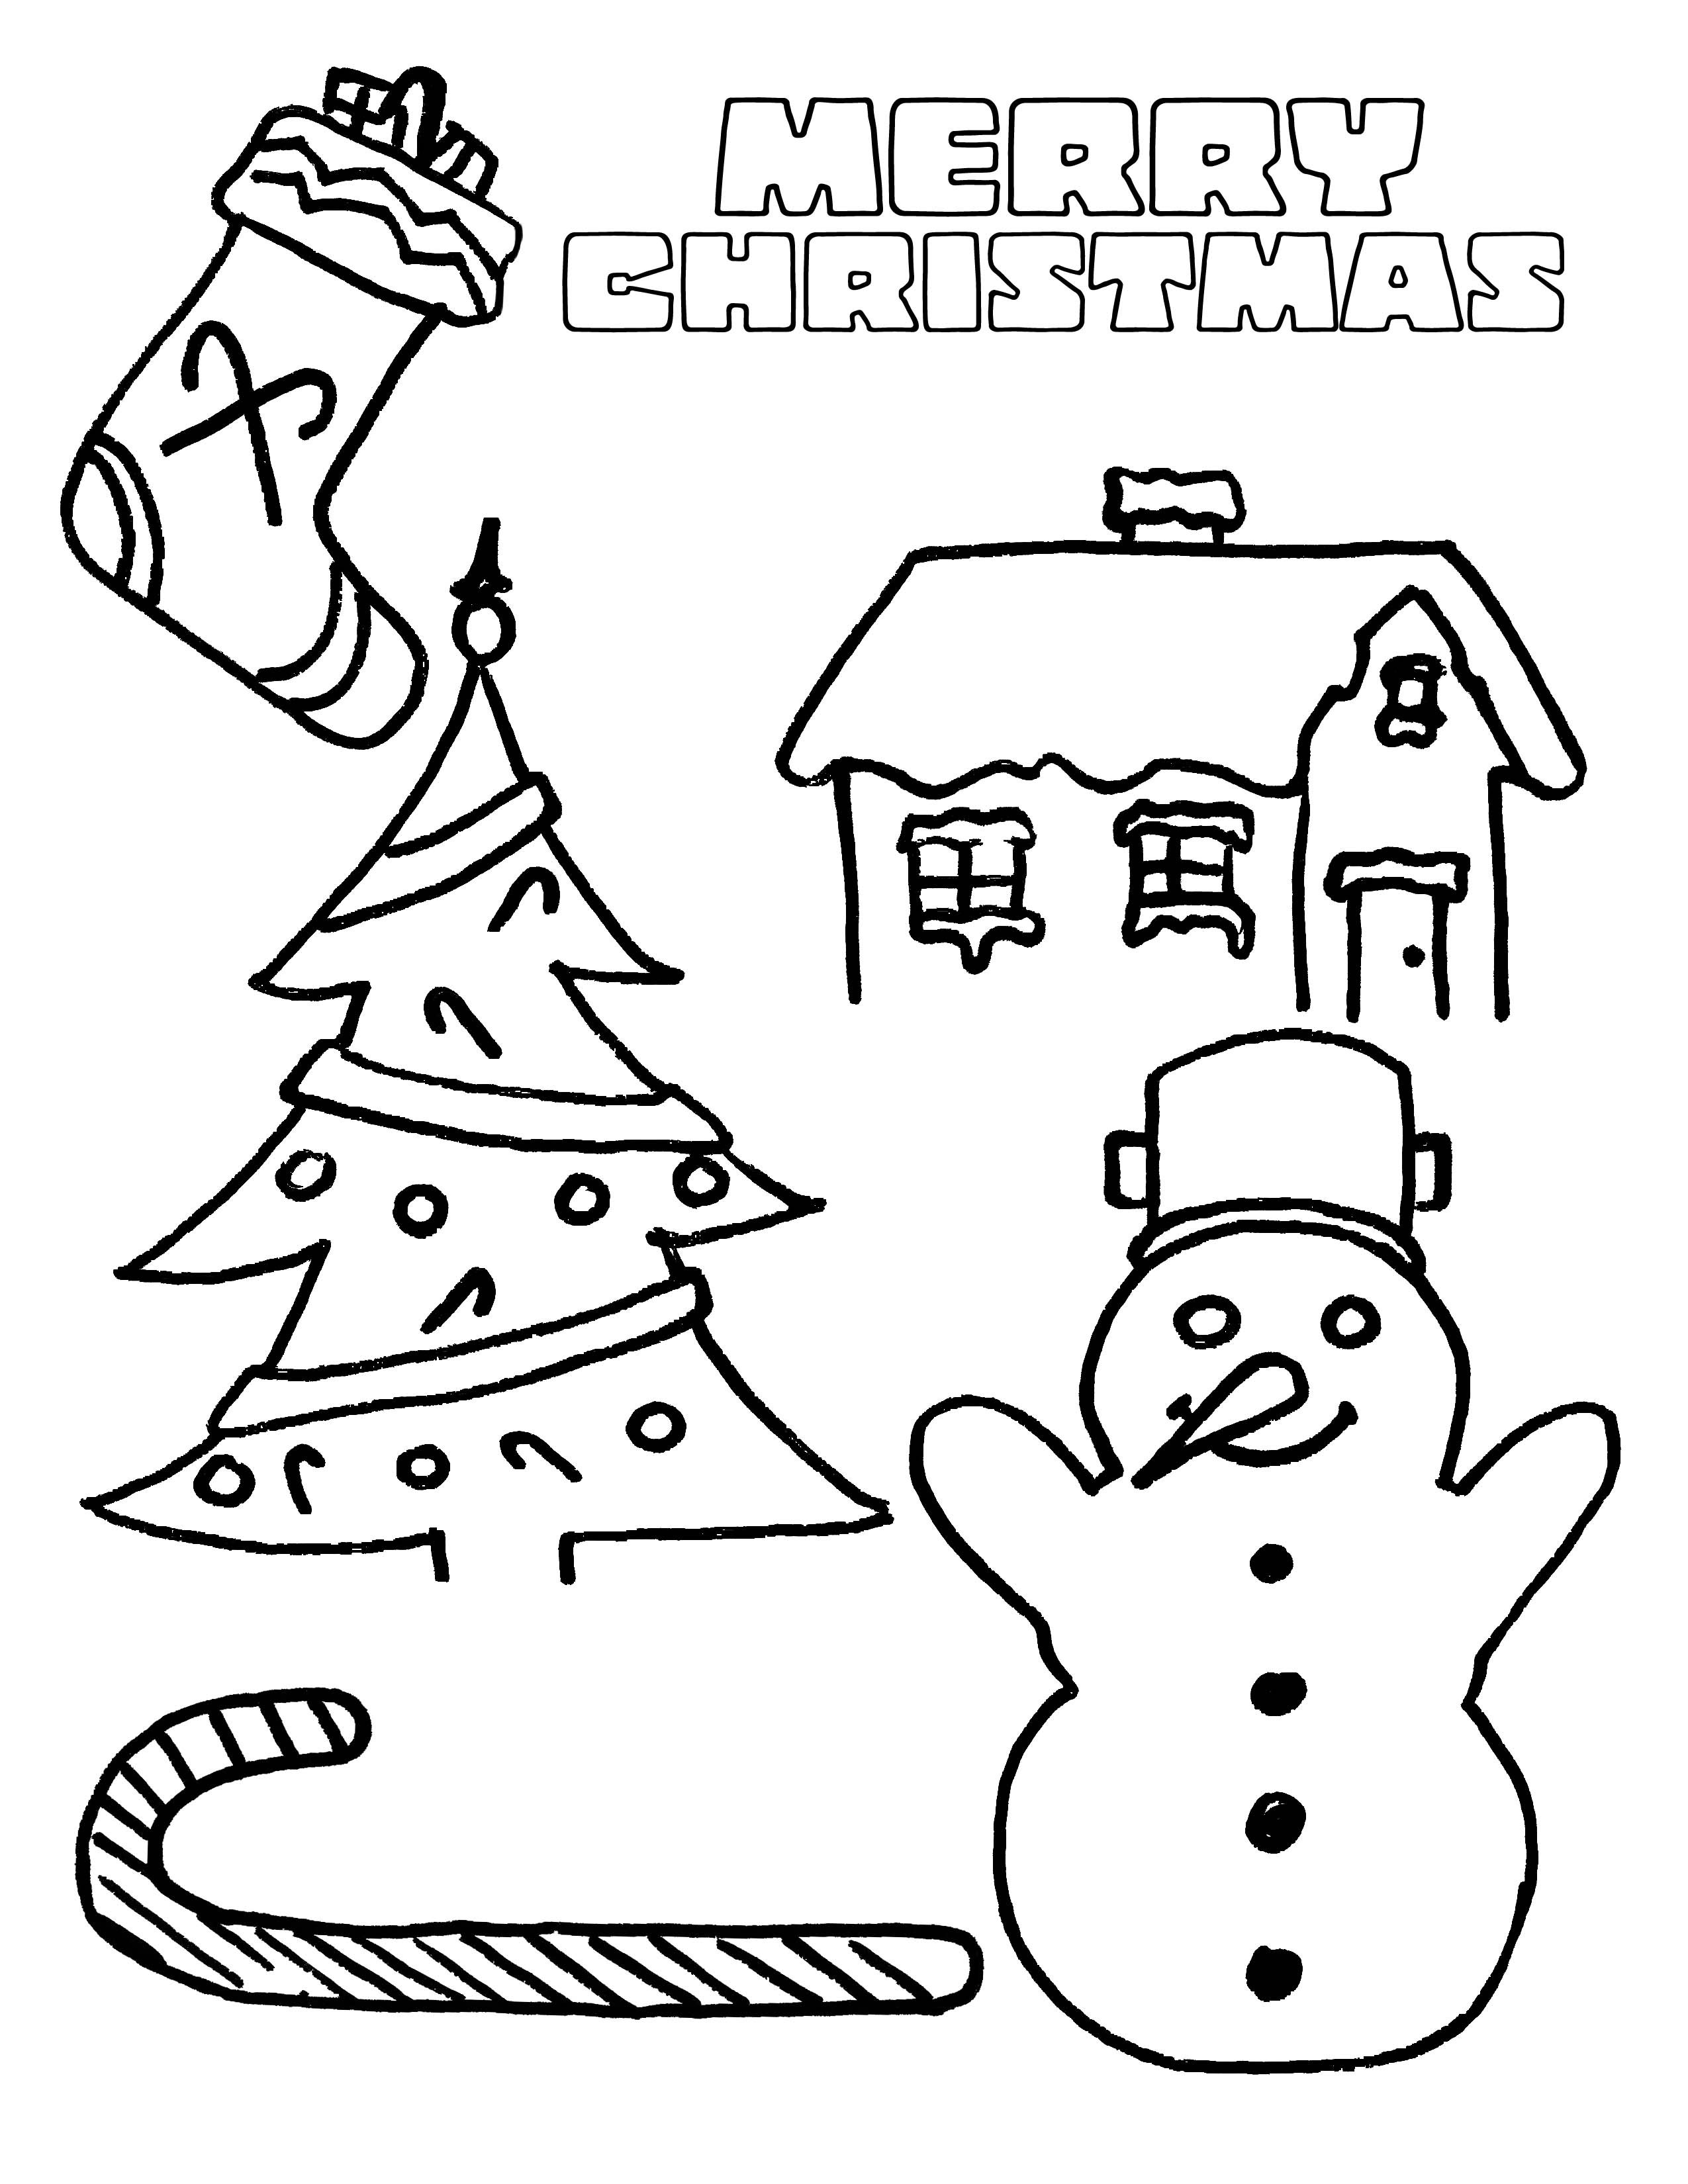 Christmas Coloring Sheets For Elementary With Party Simplicity Free Page Kids